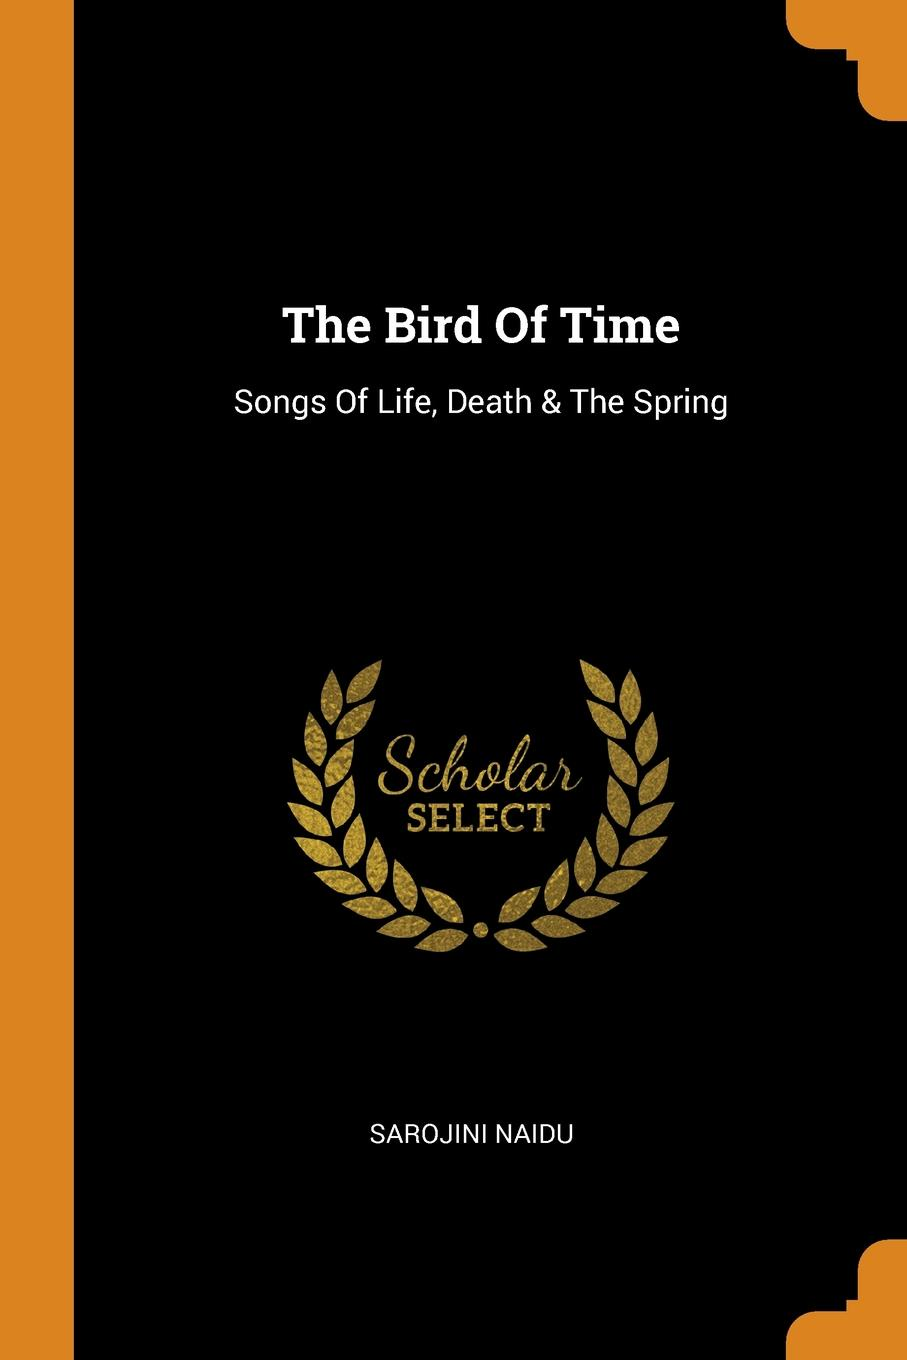 Sarojini Naidu. The Bird Of Time. Songs Of Life, Death & The Spring